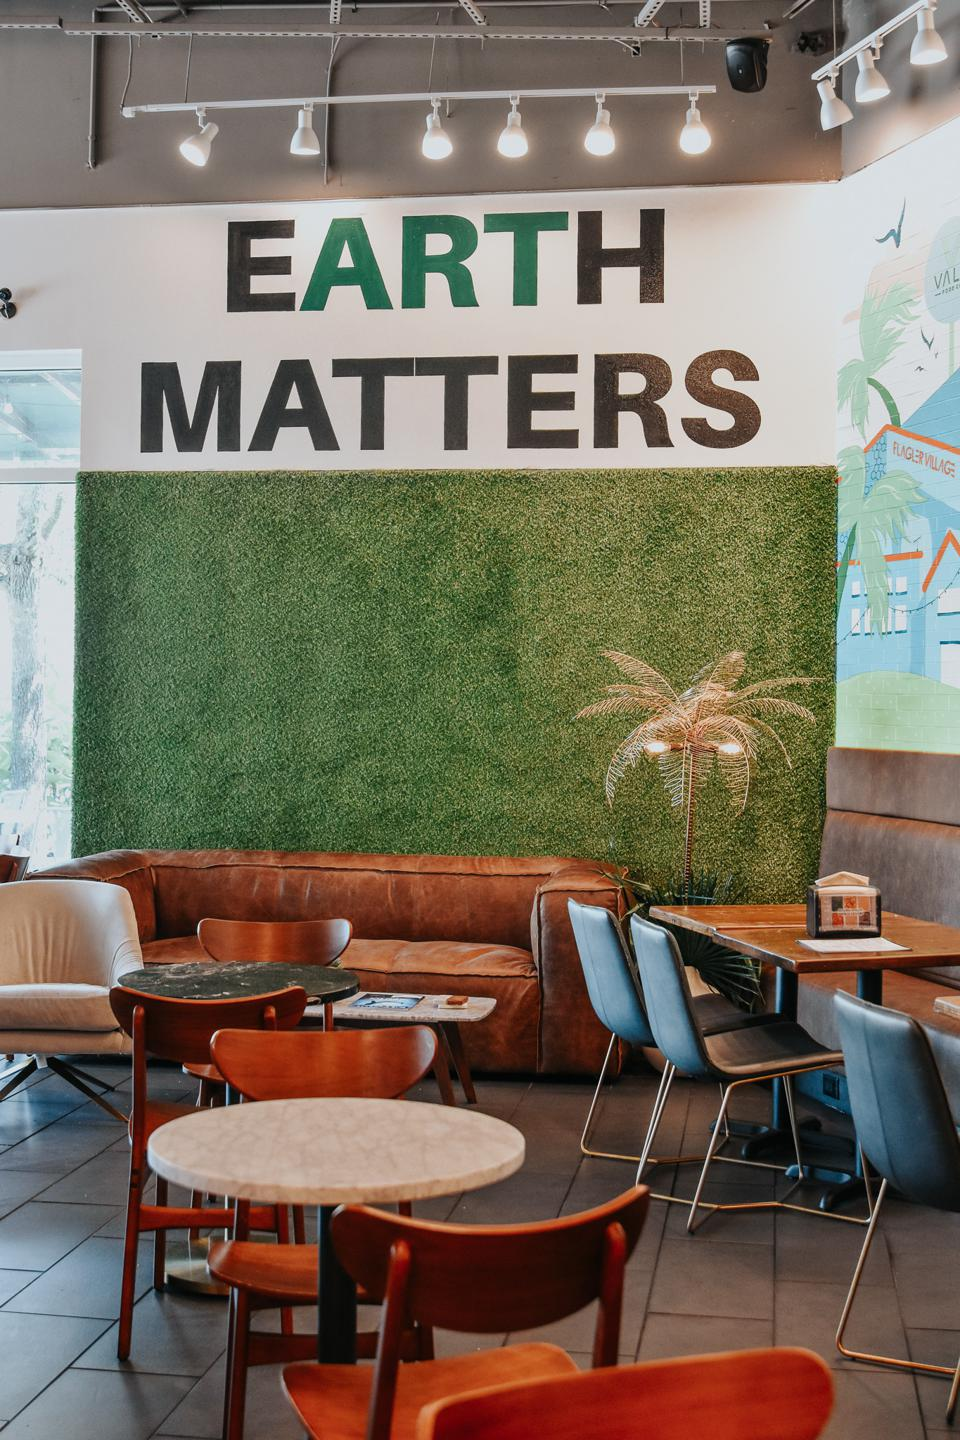 inside Vale Food Co with a mural that reads ″Earth Matters″